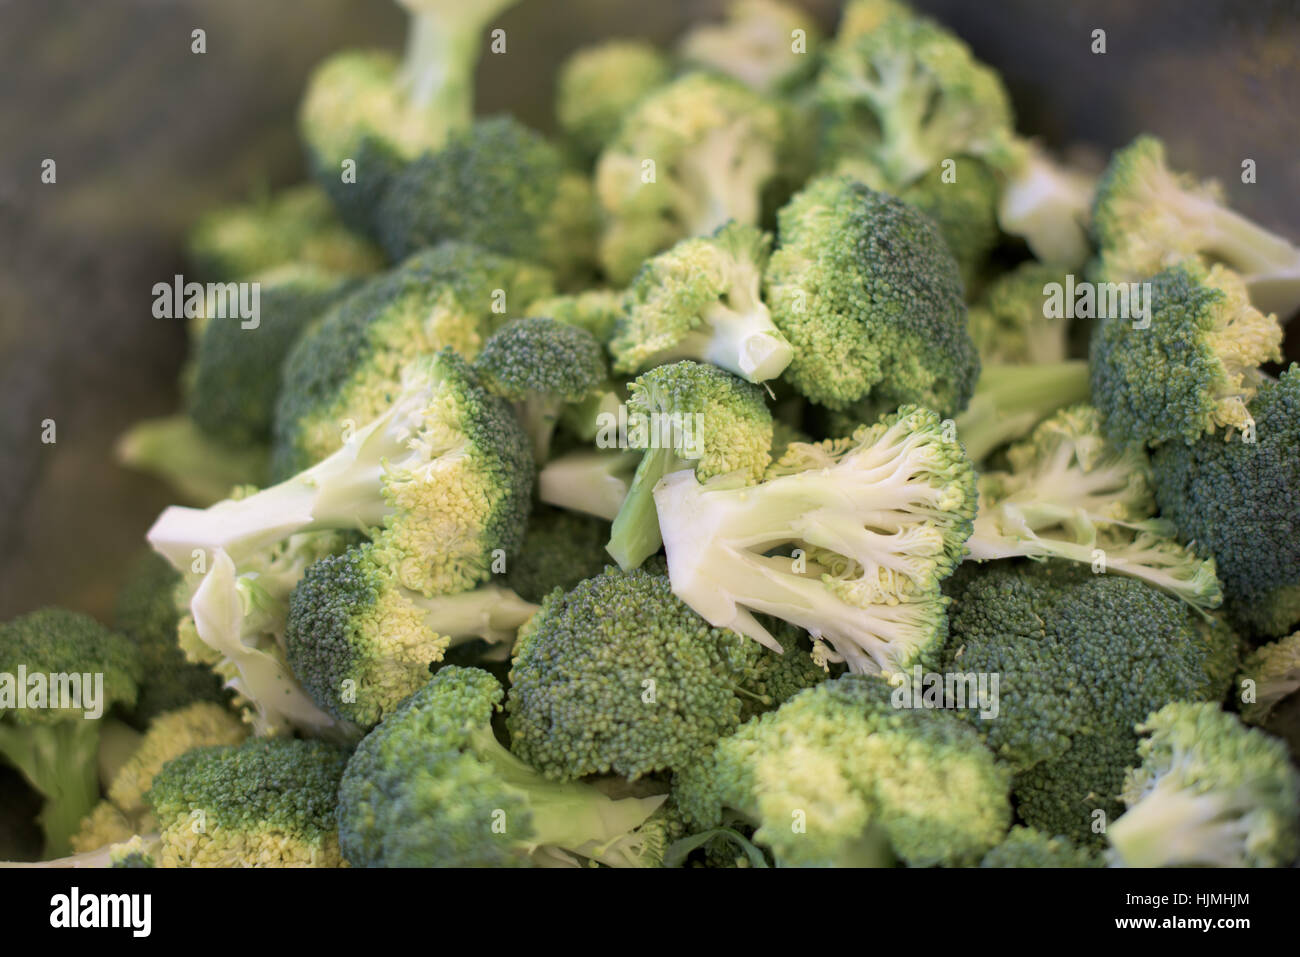 Broccoli pieces, ready for cooking - Stock Image